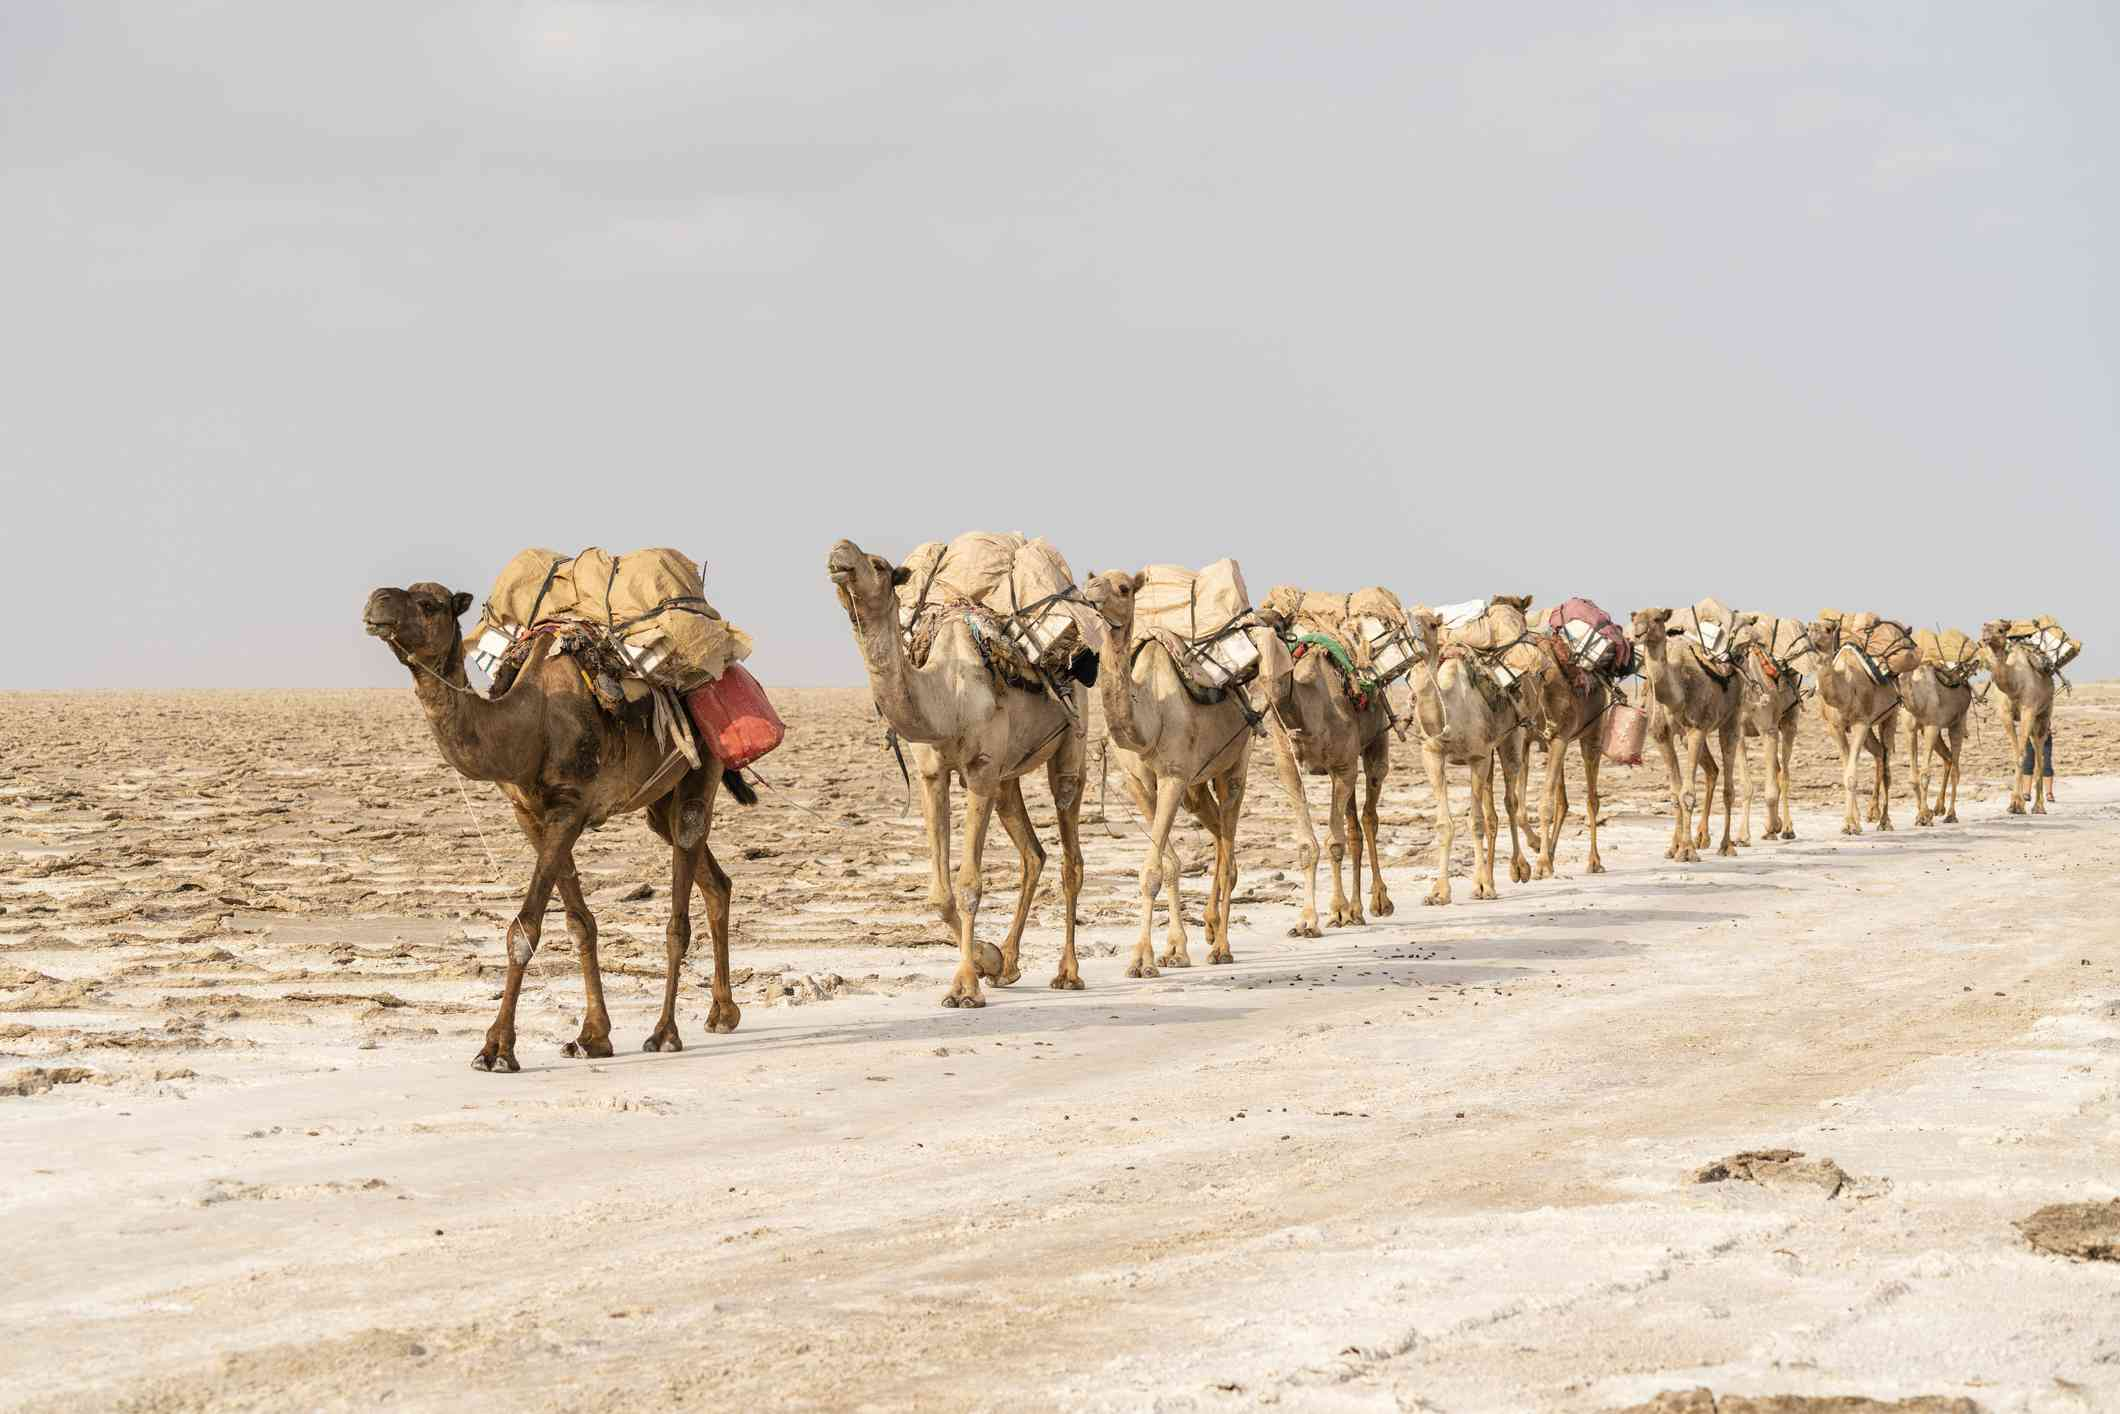 caravan of camels carrying materials on their backs across the desert